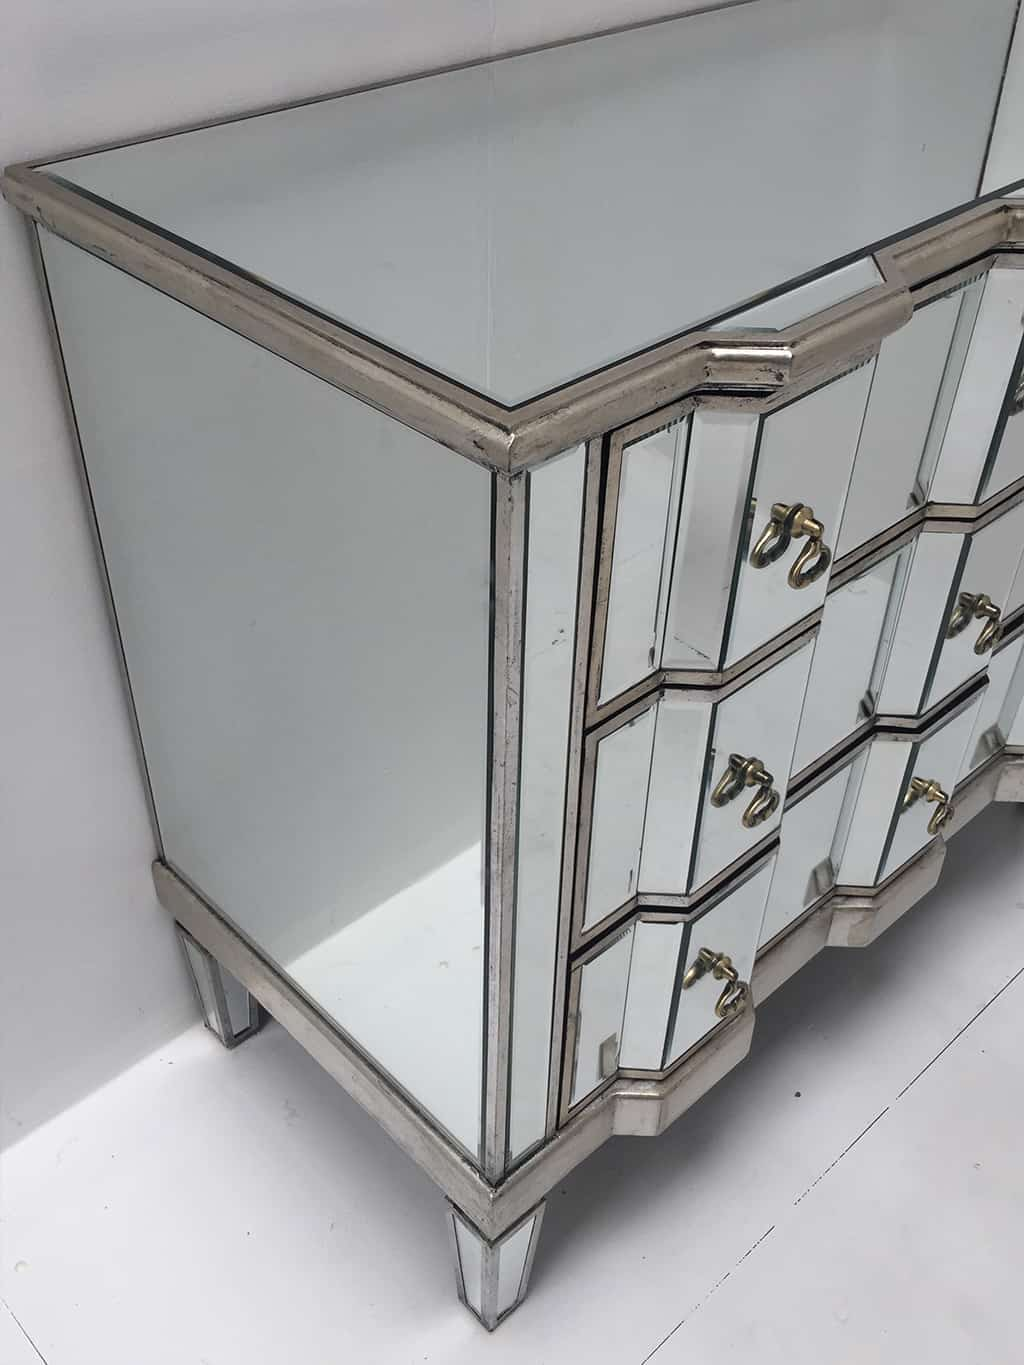 Charleston mirrored chest of 3 drawers, vintage style, silver finish, large and deep drawers, brass drop handles.